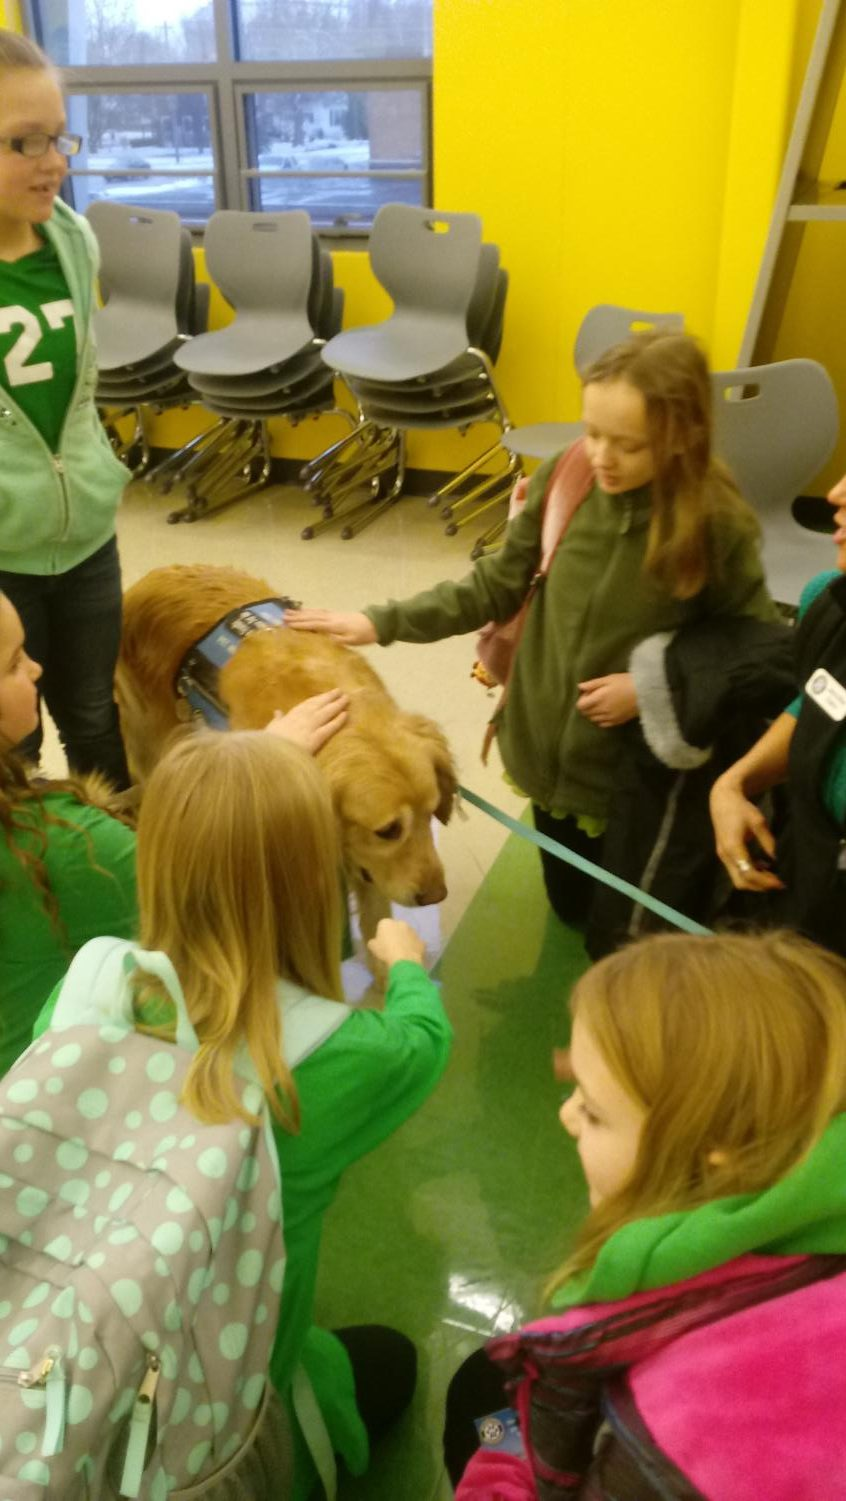 Students at the elementary school took full advantage of the comfort dogs brought in by Pawprint Ministries.